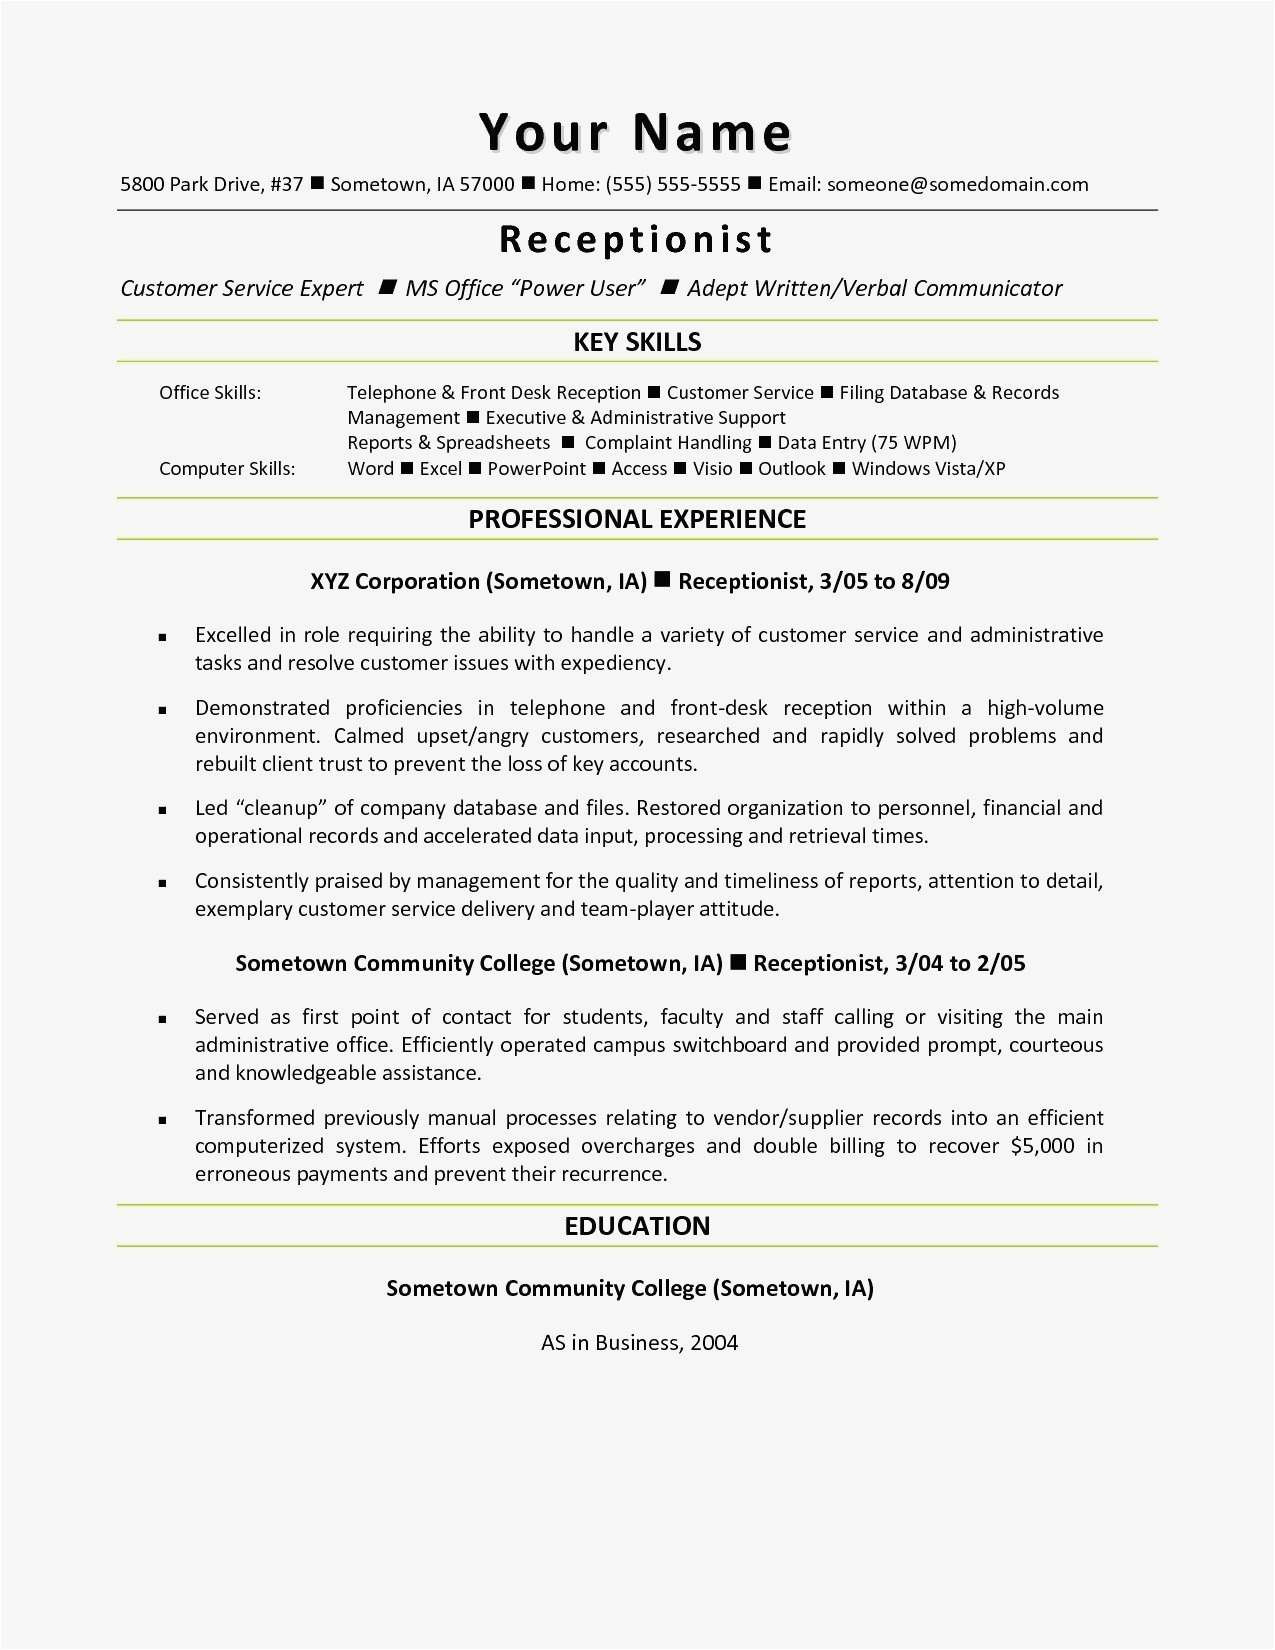 executive assistant resume template word example-New Best Federal Government Resume Template Best Bsw Resume 0d resume beautiful resume cover letter templates 19-l